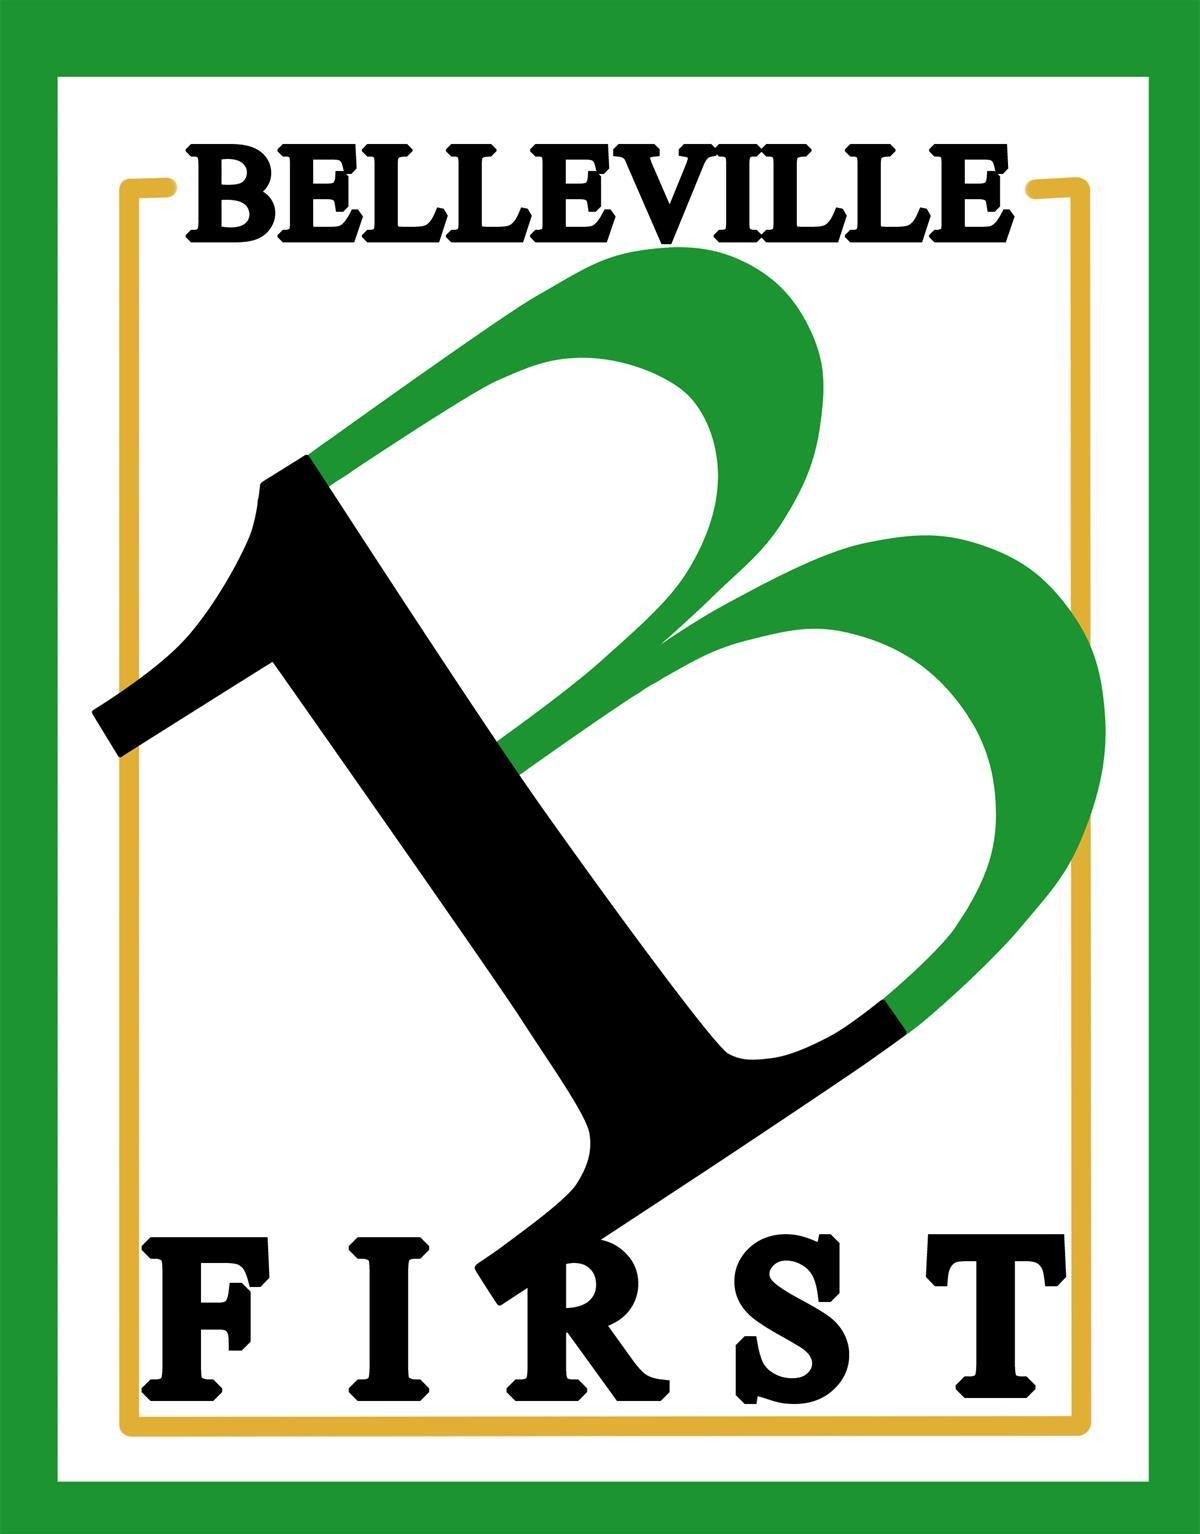 Belleville First Card Belleville Main Street